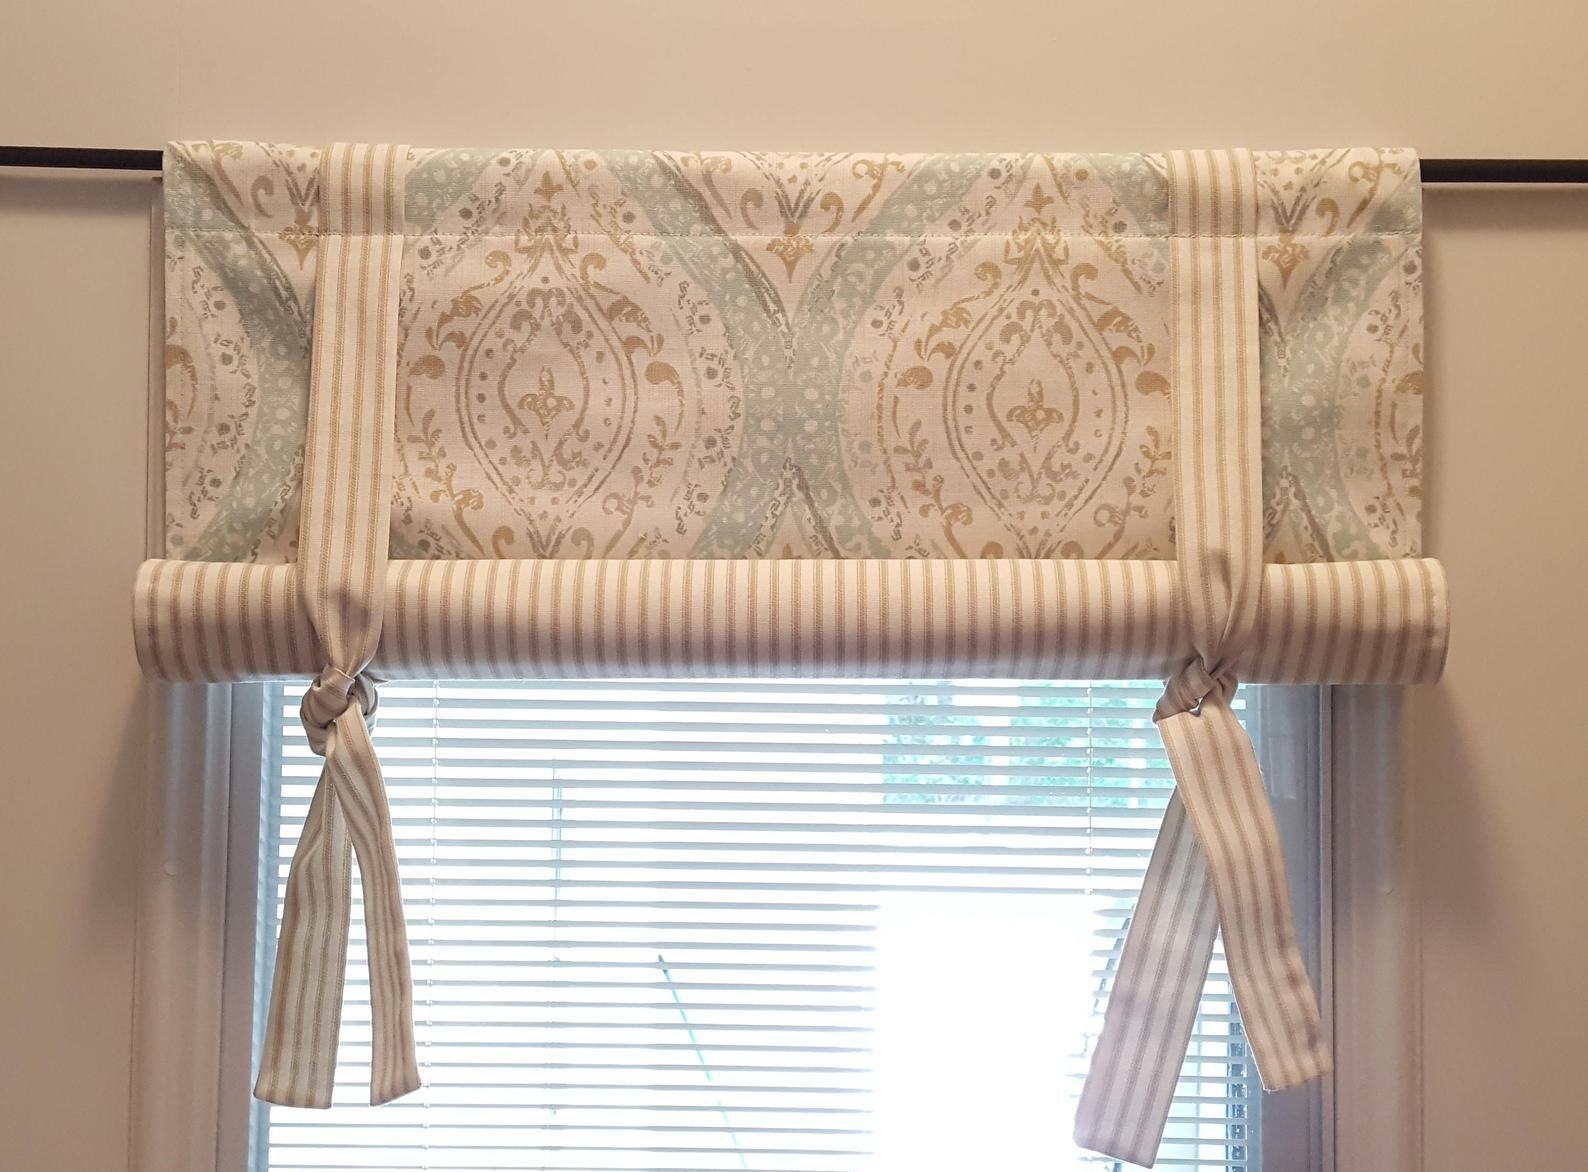 Custom Roll Up Tie Up Valance Magnolia Home Fashions Ariana Spa Fabric In 2020 Tie Up Valance Curtains Diy Curtains